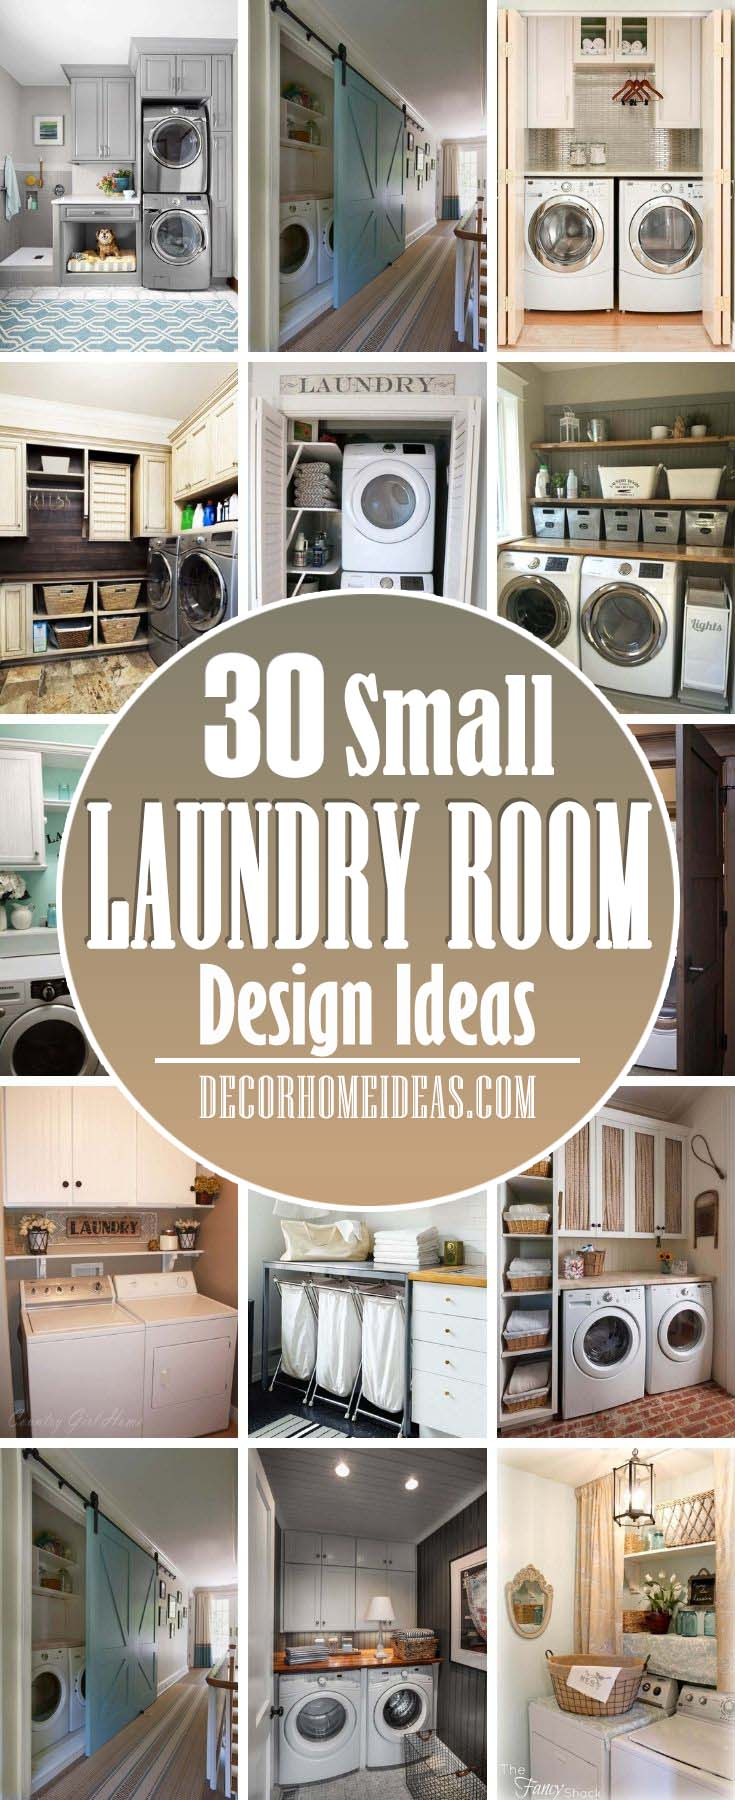 Best Small Laundry Room Design Ideas. If your home isn't blessed with a huge laundry room to wash and fold your clothes, don't worry. All of these room ideas—with built-in storage tips—will help you make the most of what you do have. #decorhomeideas